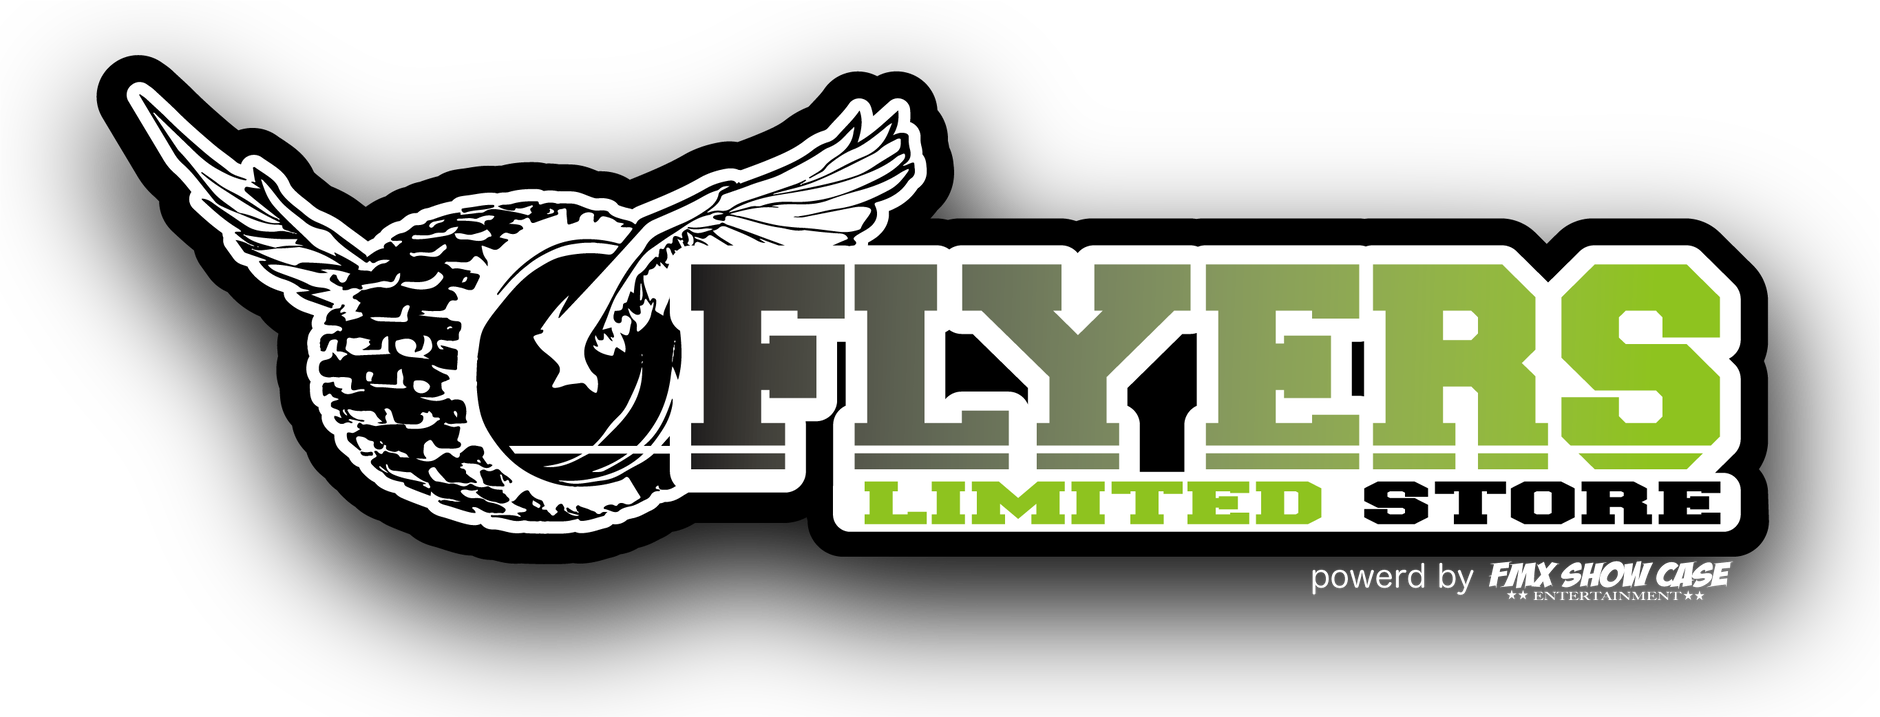 FLYERS limited STORE